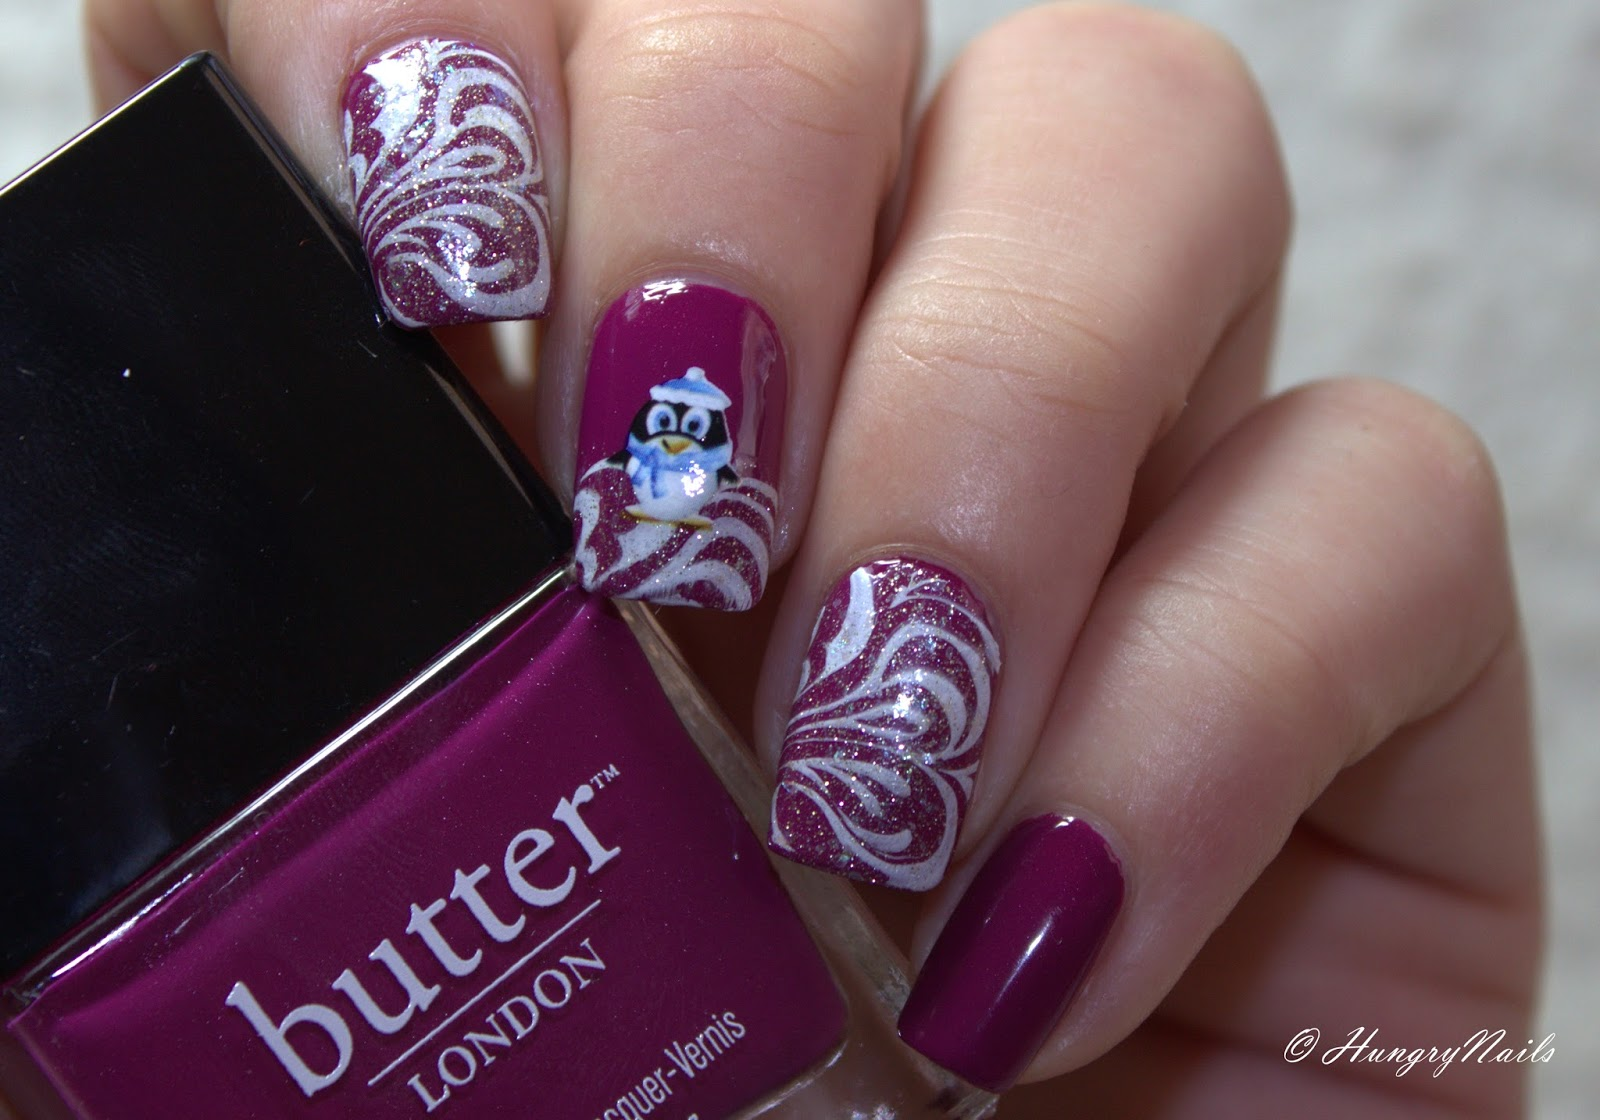 http://hungrynails.blogspot.de/2014/12/Winterdesign-mit-ButterLondon-QueenVic.html